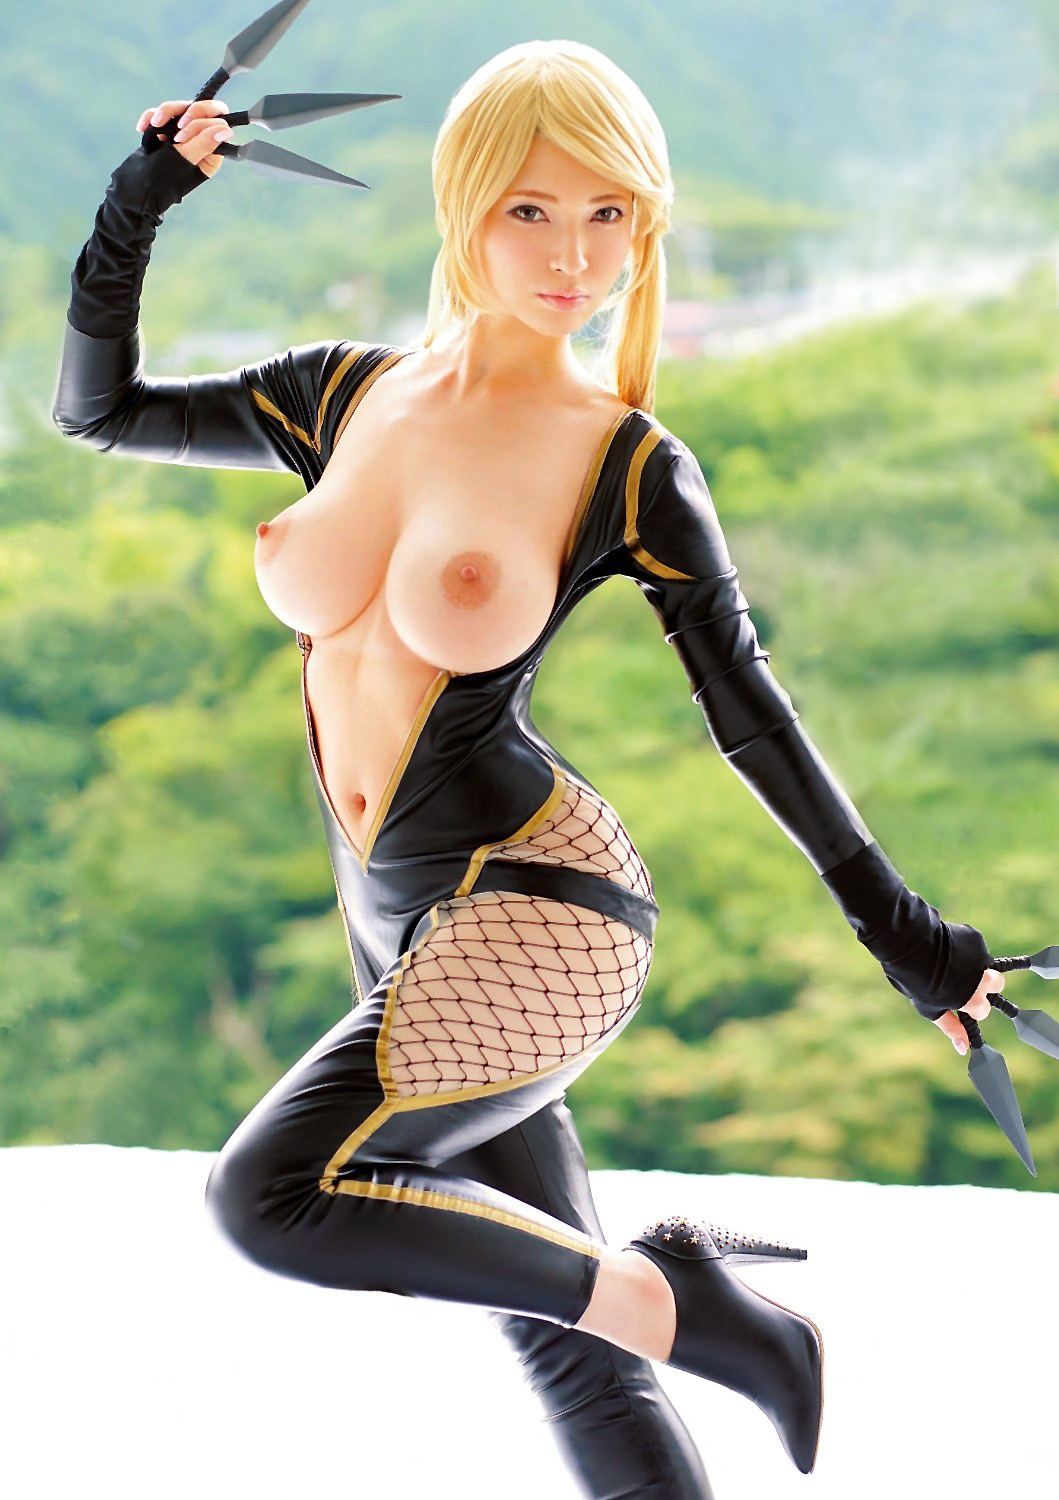 Awesome hardcore nude cosplay photos adult image